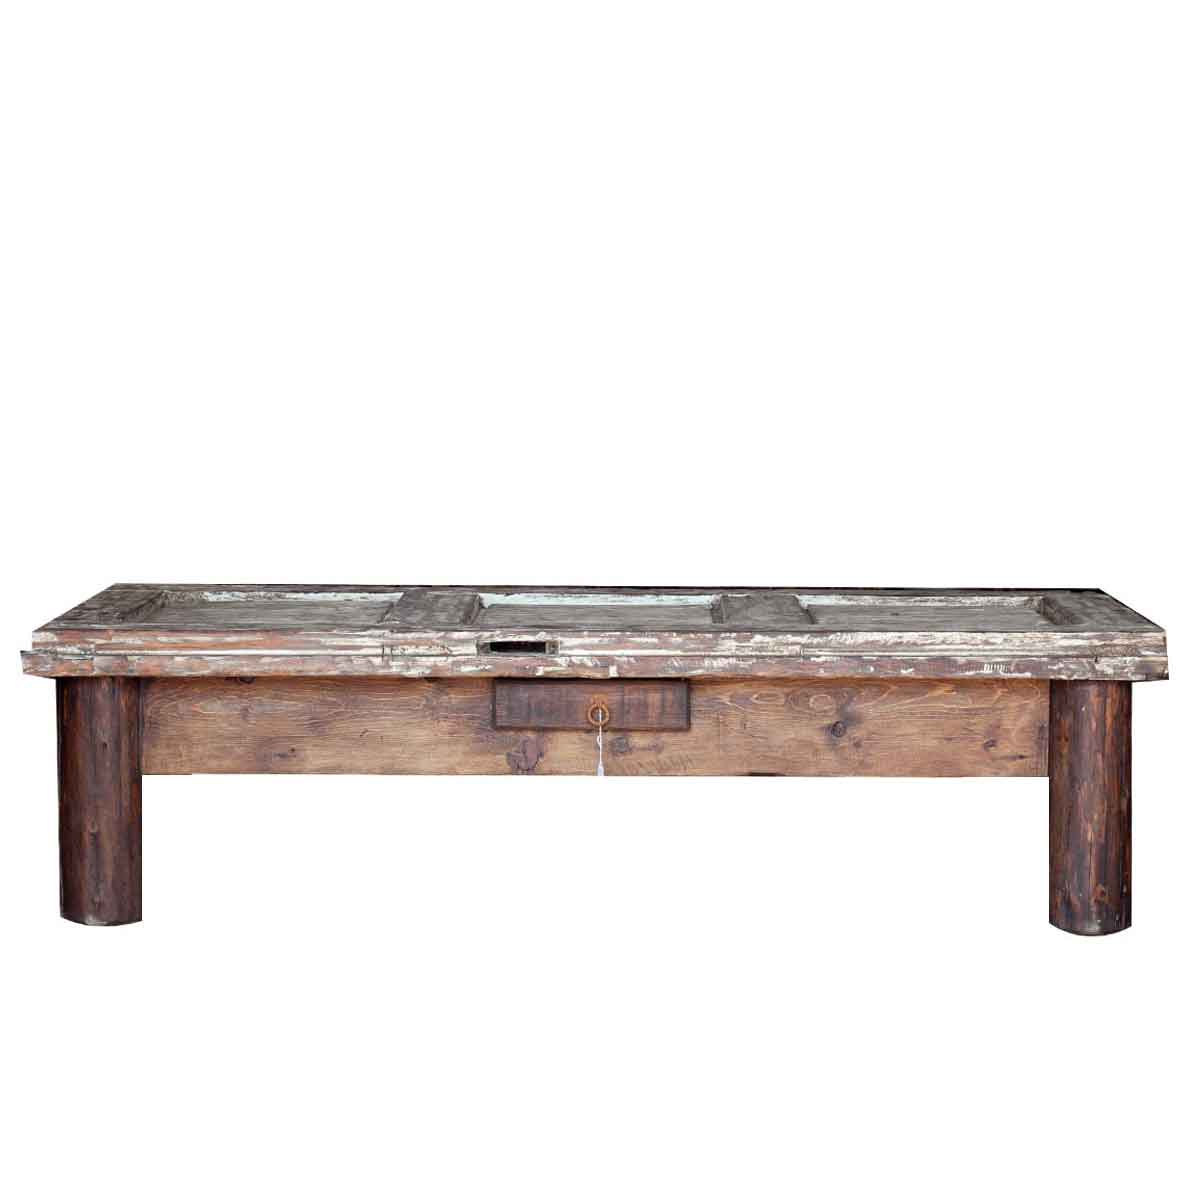 Buy beautiful reclaimed barn wood coffee table online for Reclaimed coffee table